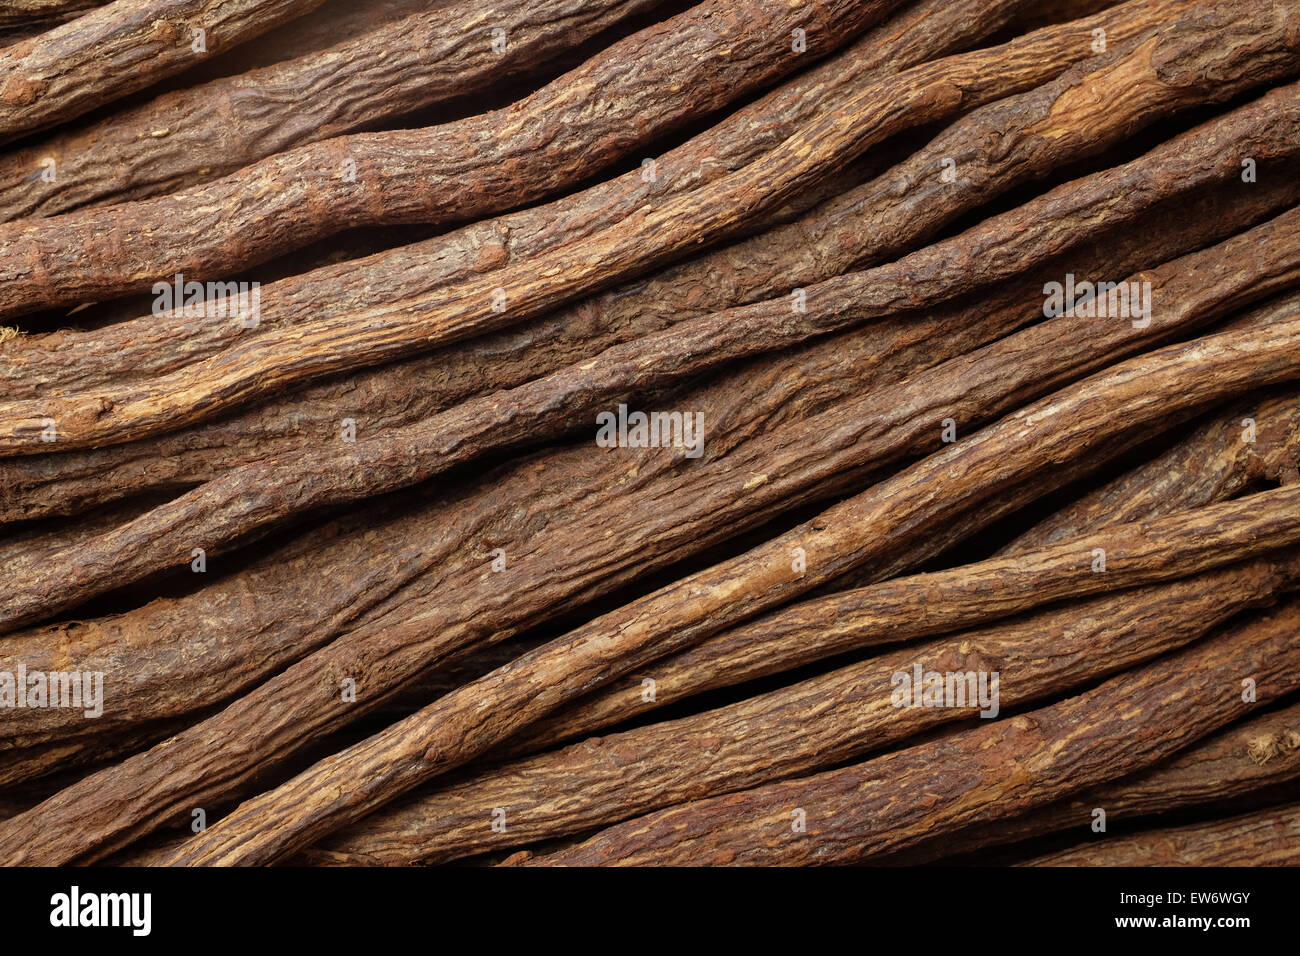 Pieces of liquorice root piled diagonally as an abstract background texture - Stock Image